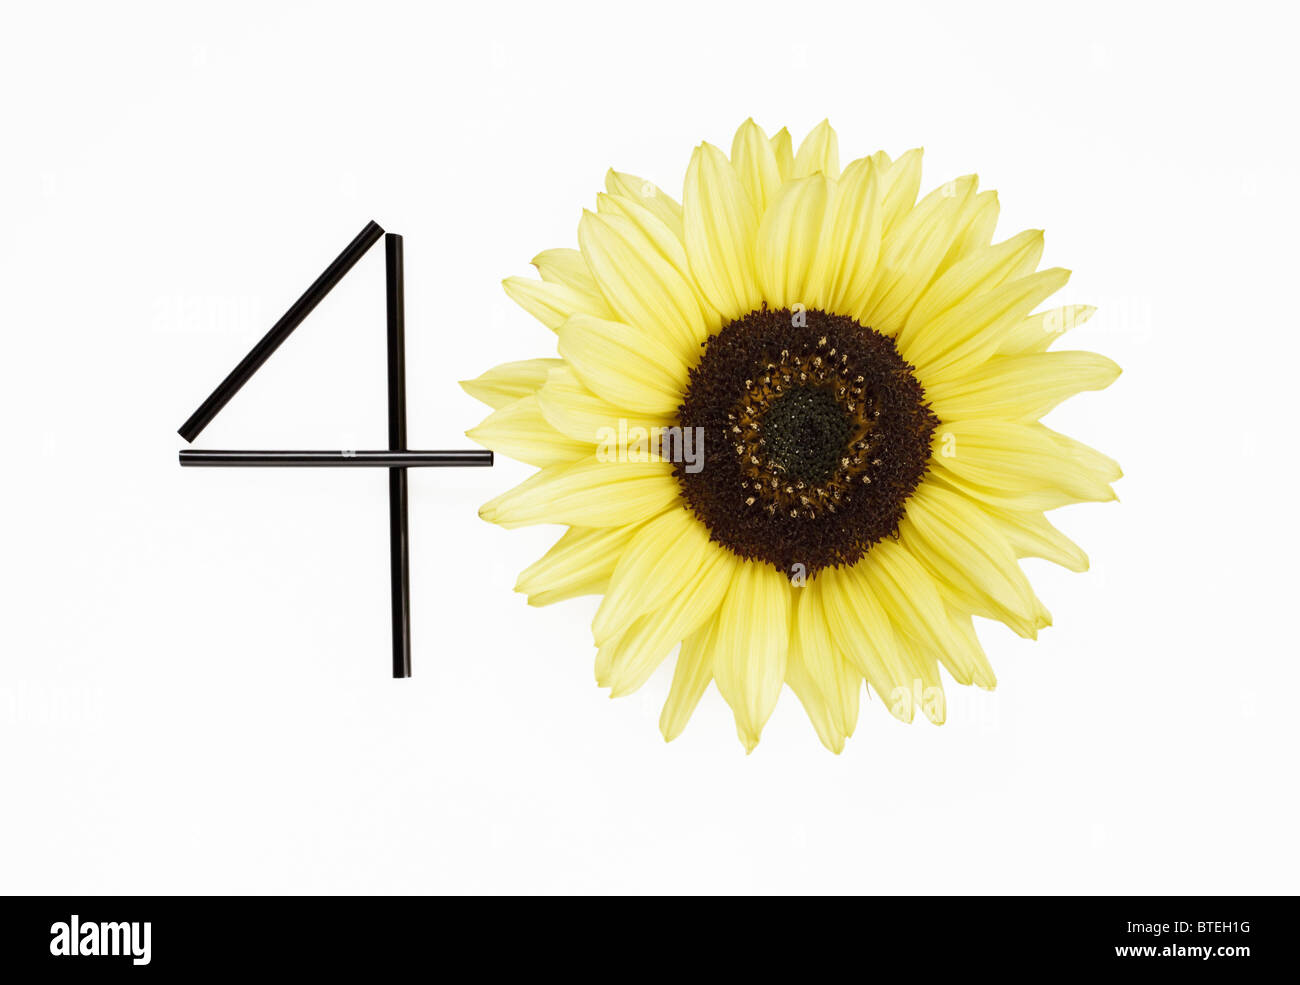 Sunflower representing number forty - Stock Image